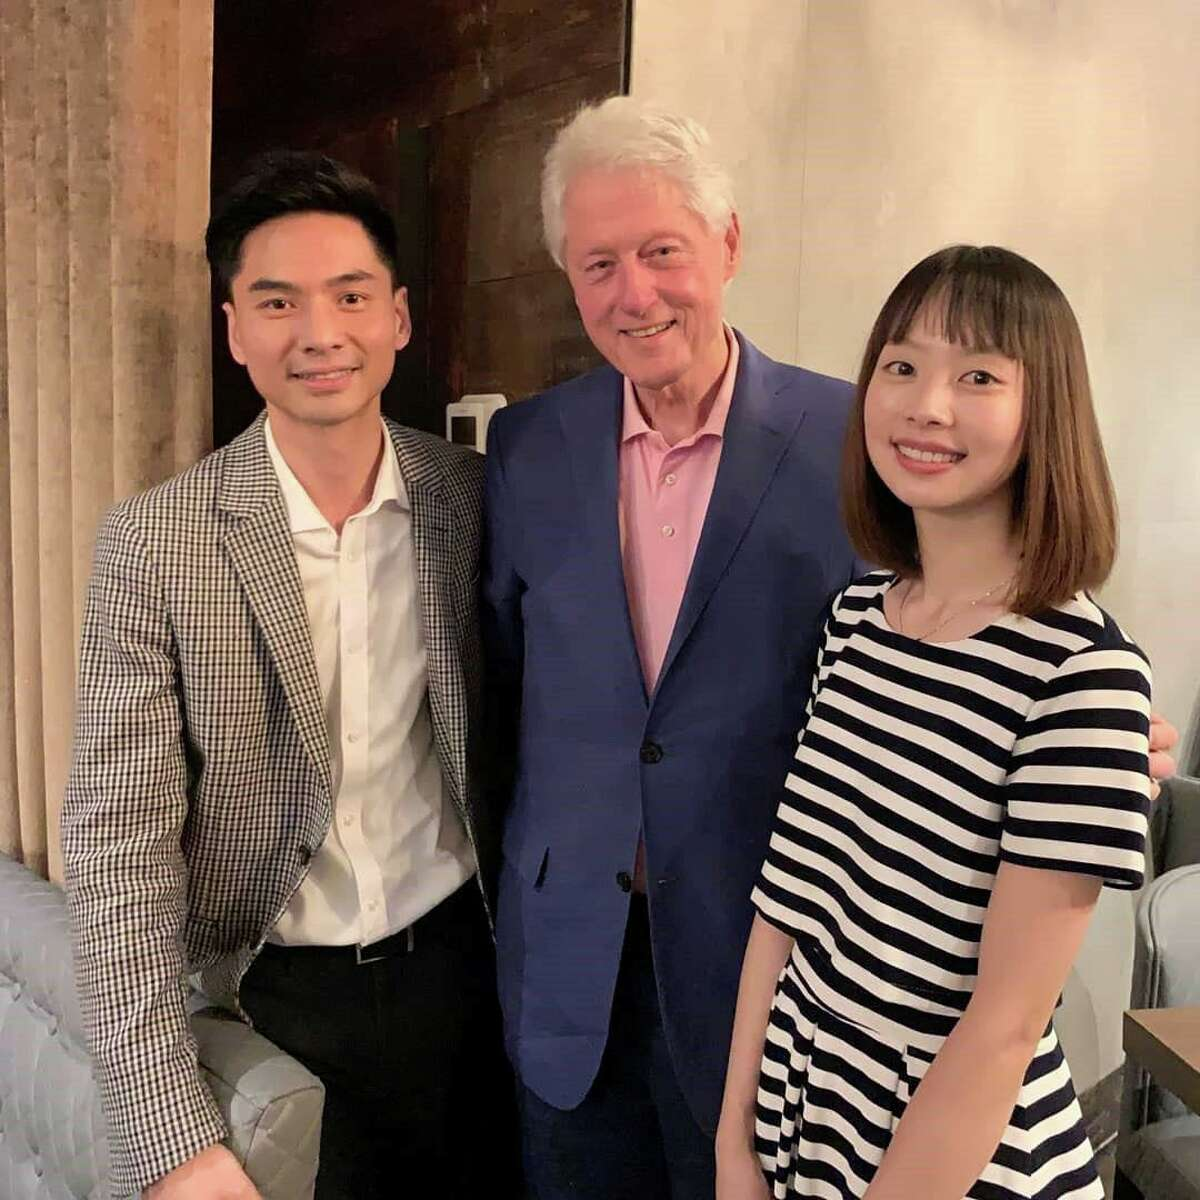 K Dong, owner of MIKU Sushi Bar and Restaurant at 62 Greenwich Ave., poses for a photo with President Bill Clinton and MIKU's hostess Coco on July 6.